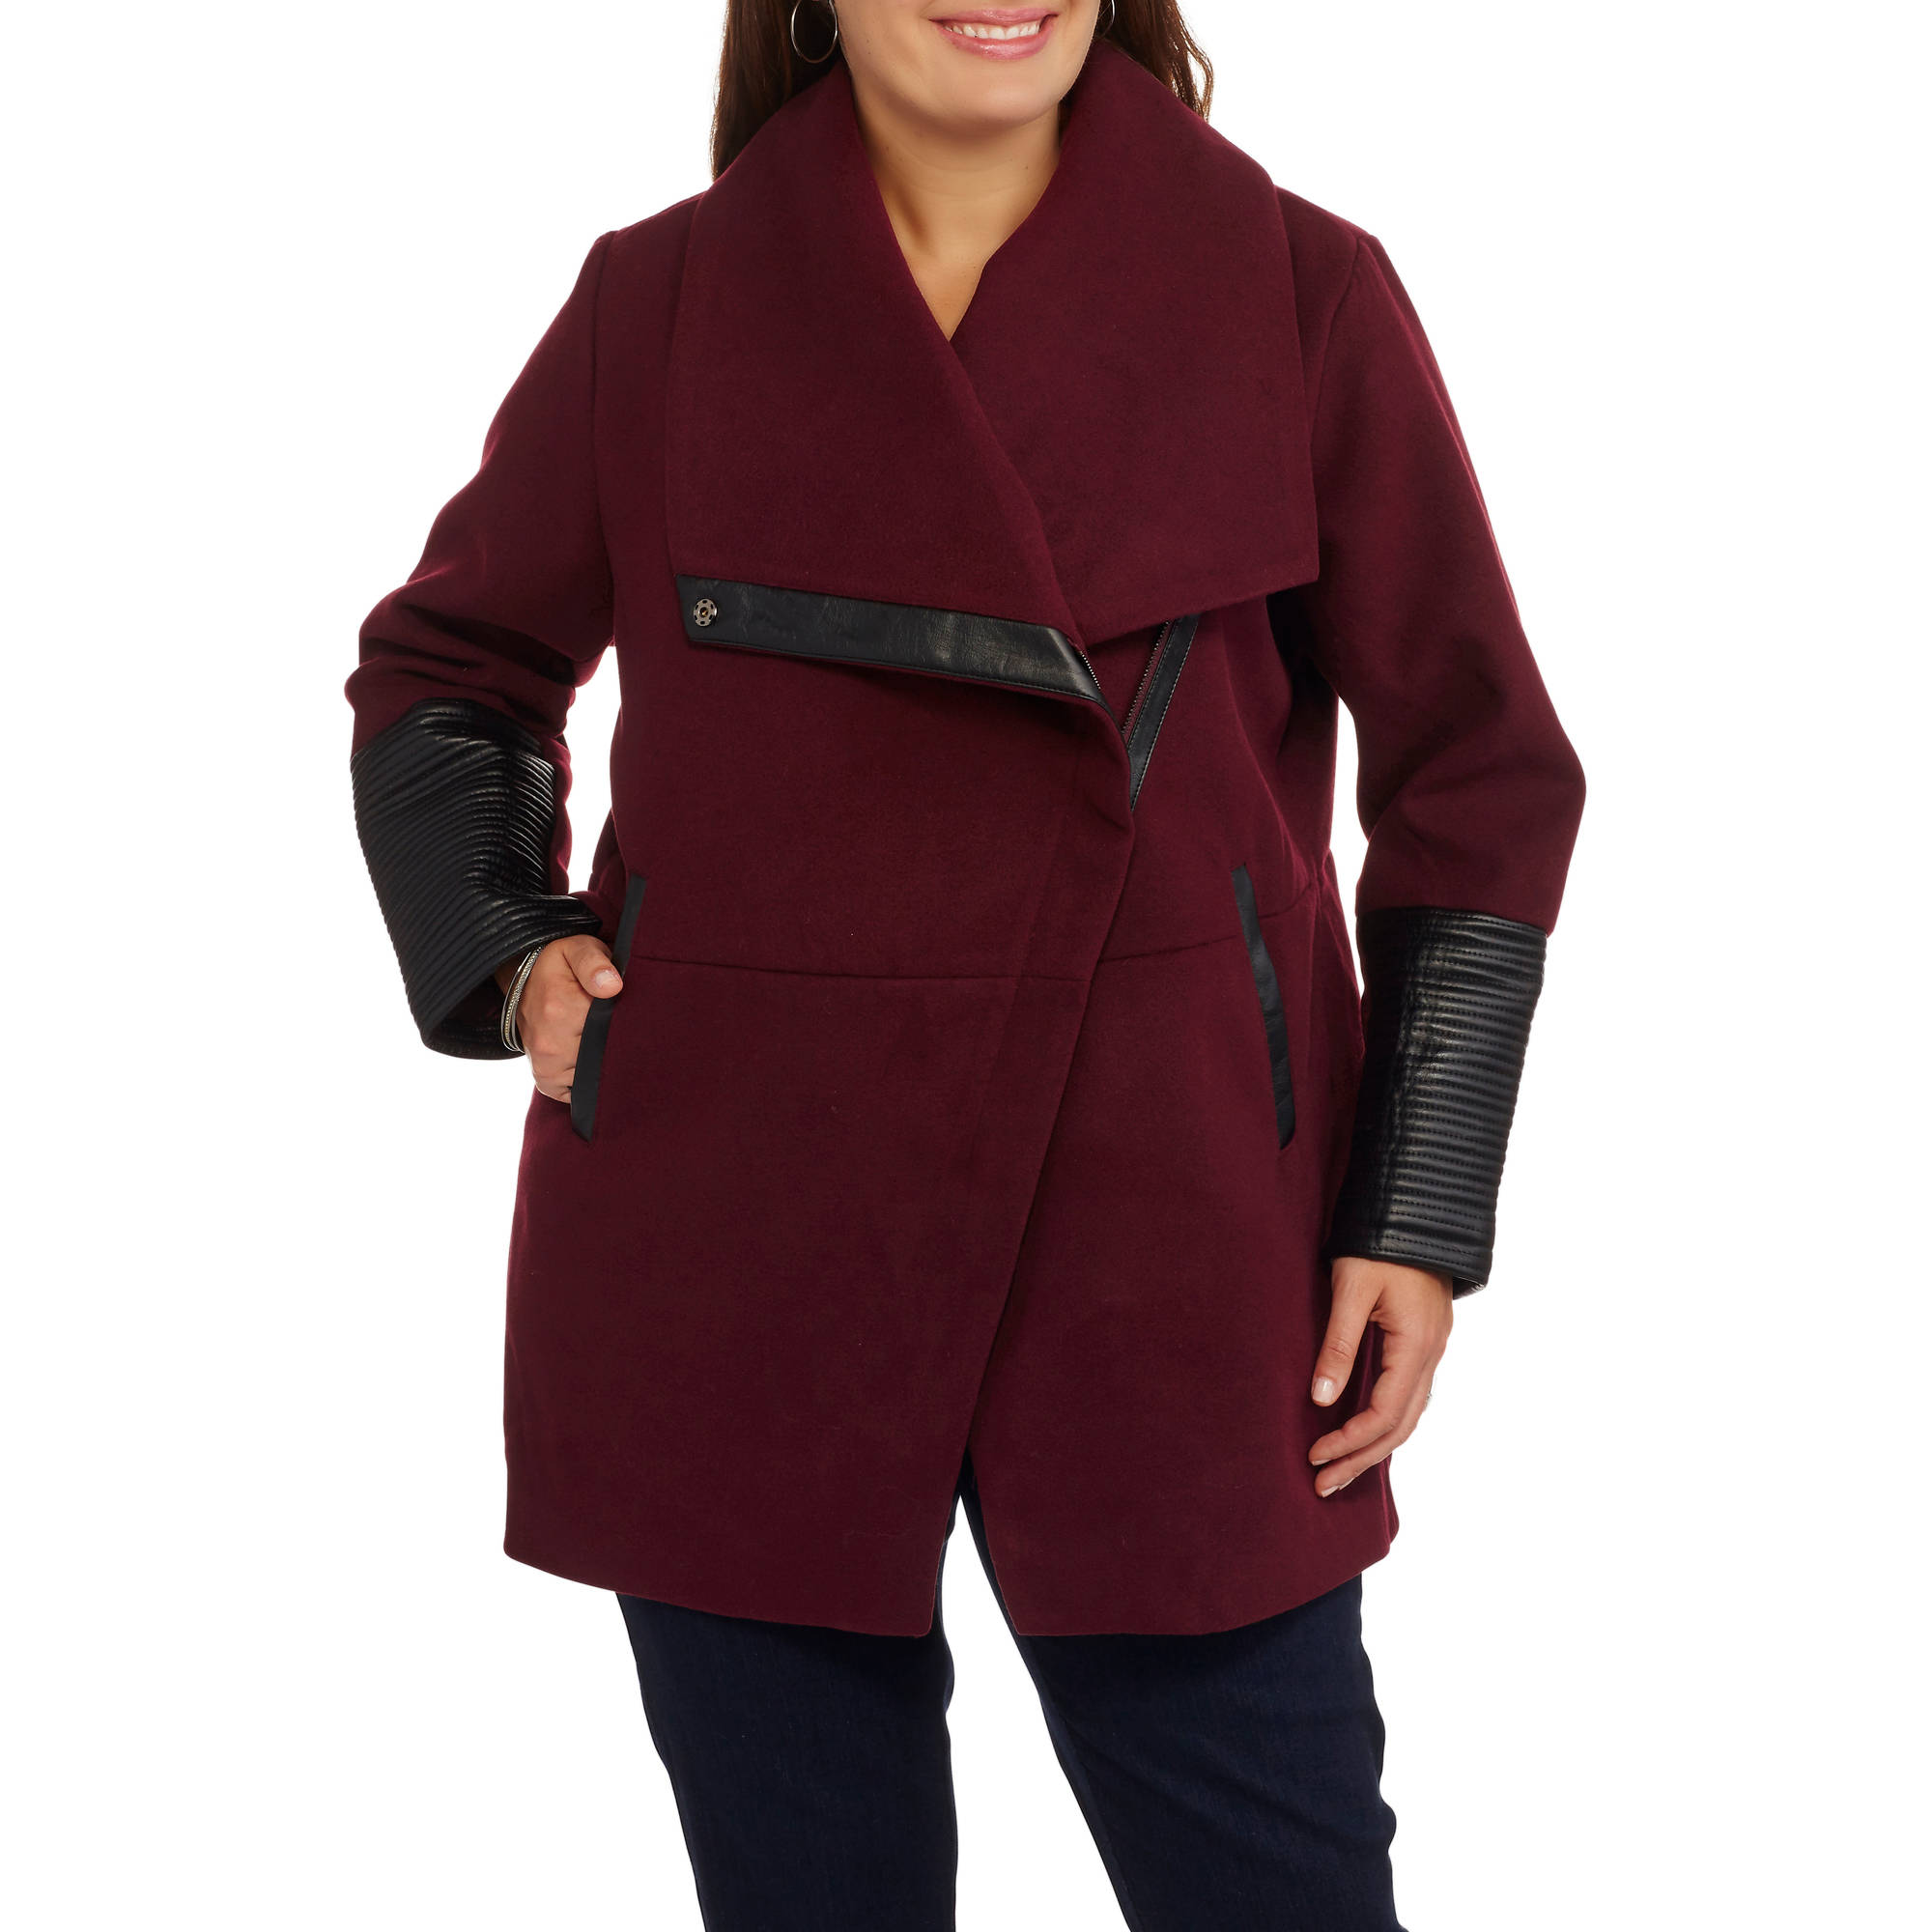 Maxwell Studio Women's Plus-Size Faux Wool Moto Coat With Faux Leather Details